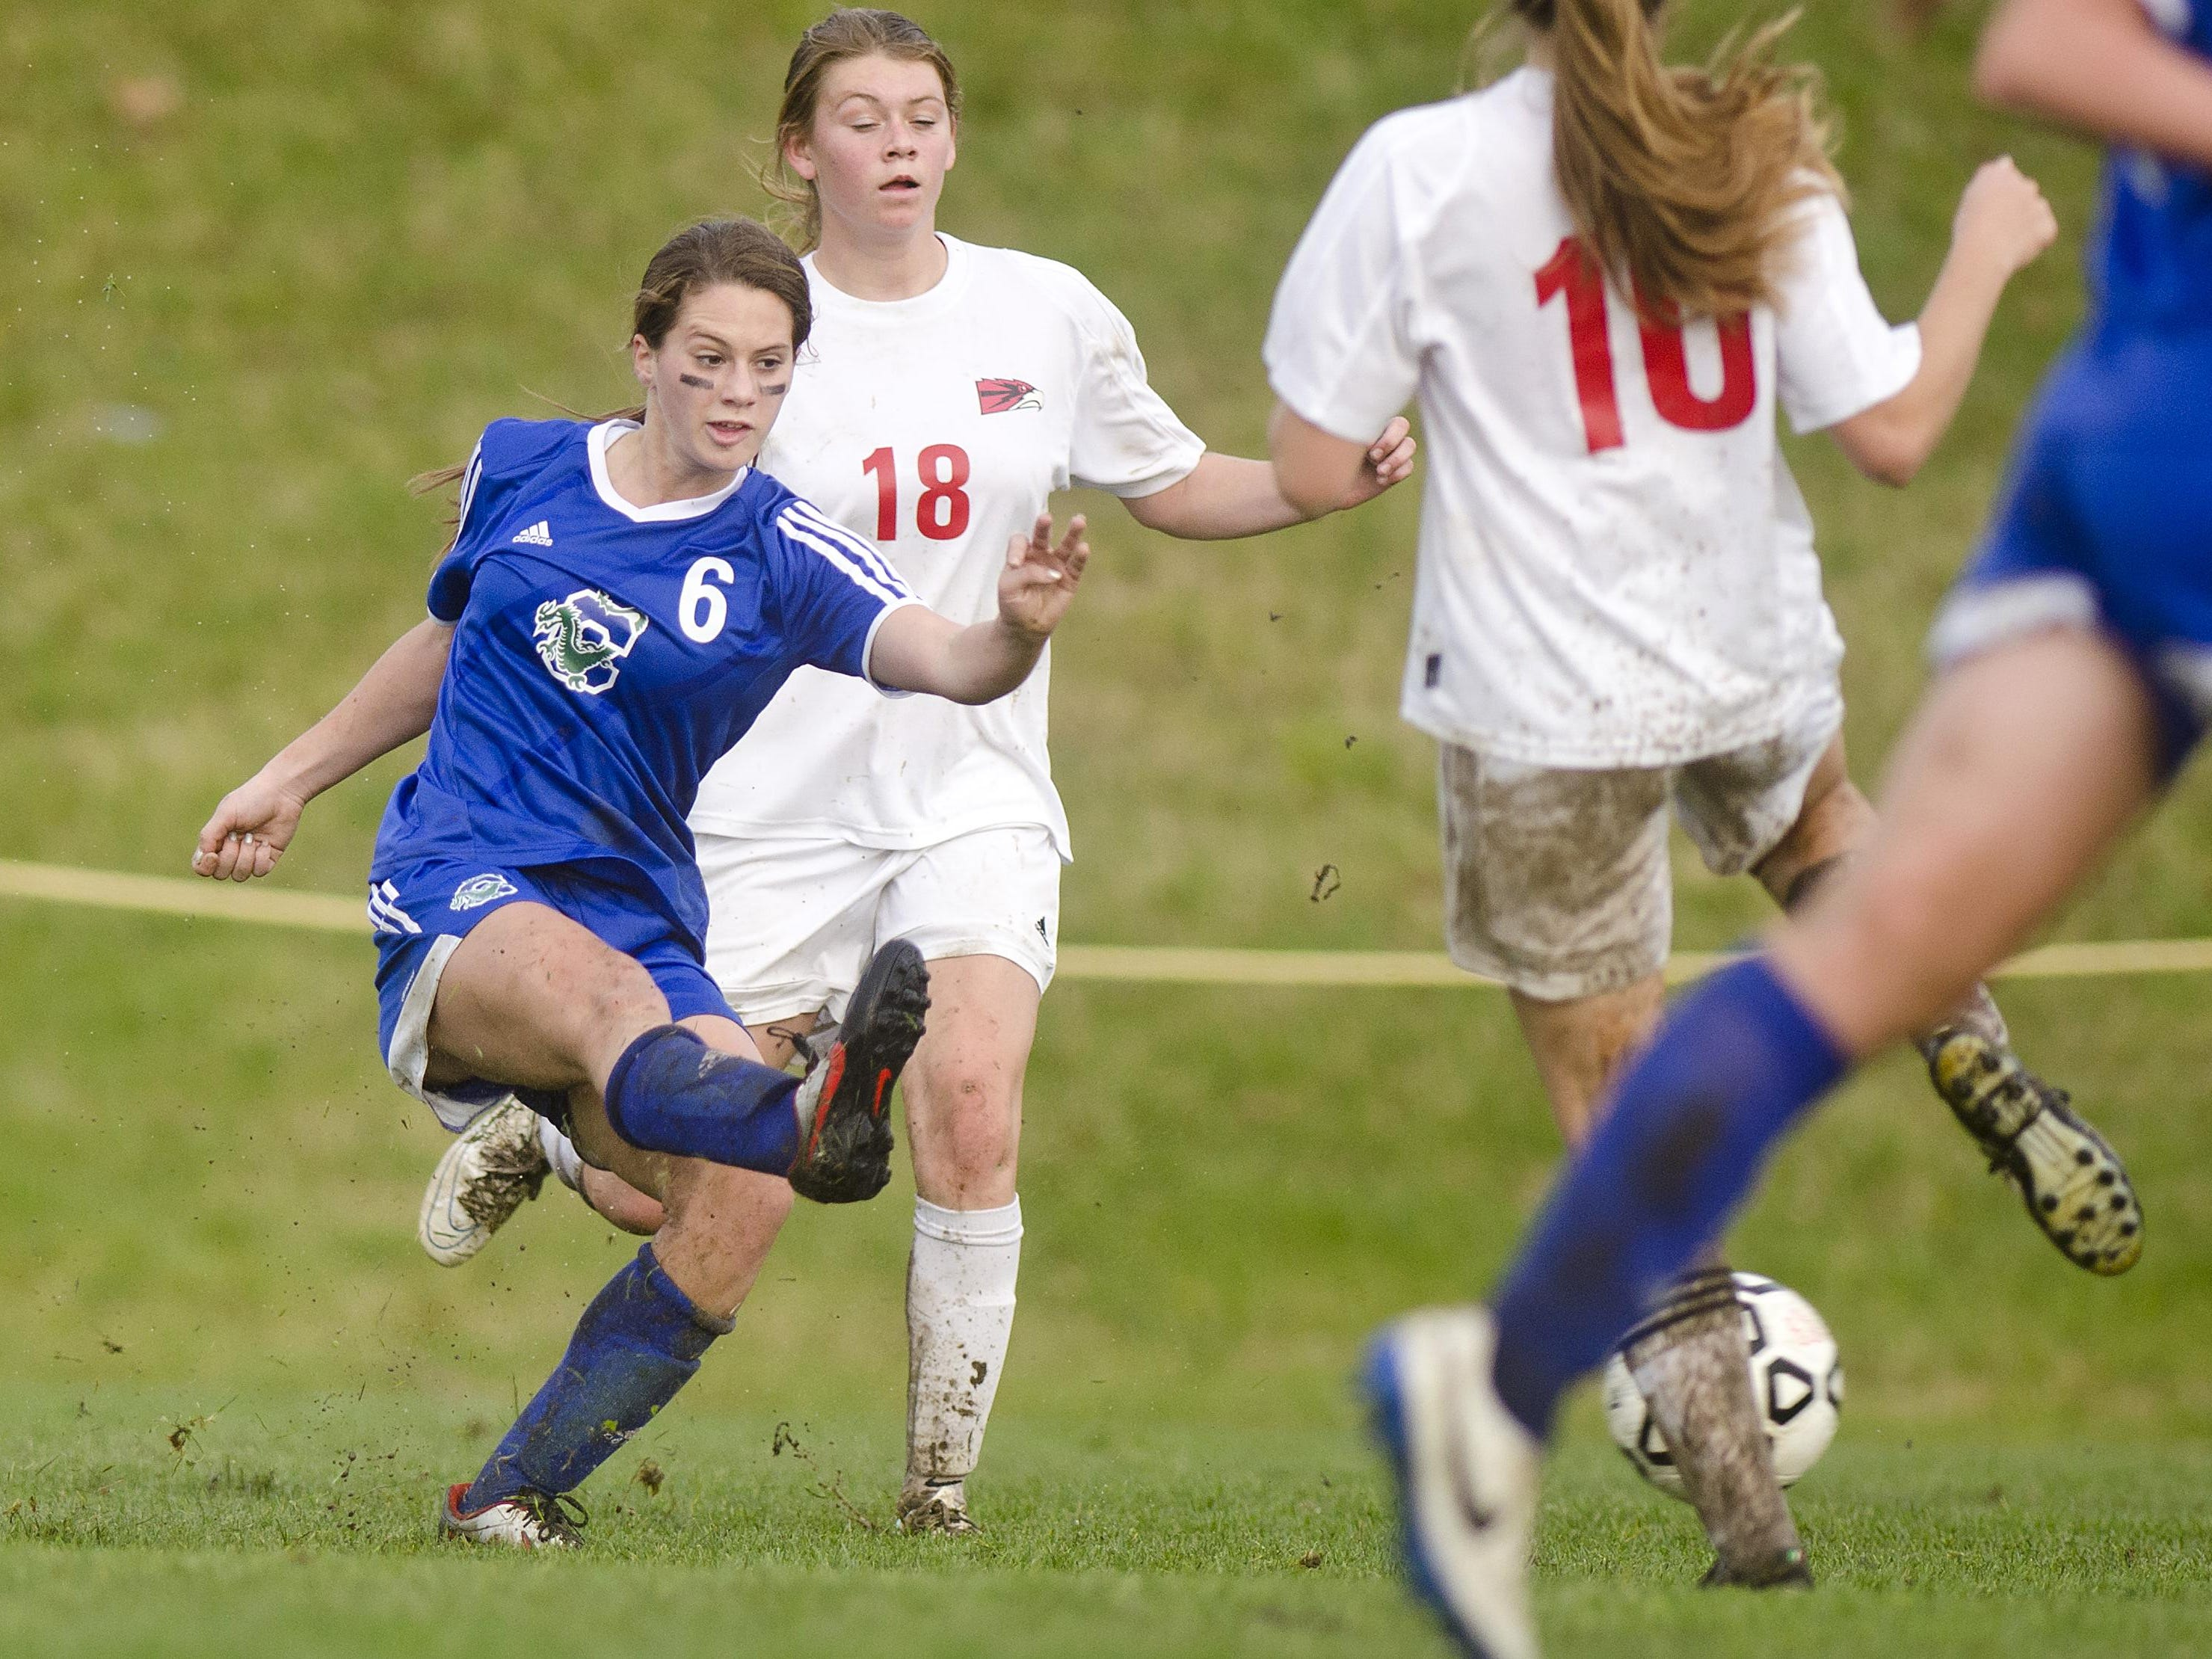 Colchester's Autumn Hathaway, left, attempts a shot against Champlain Valley during the second half of Tuesday's girls soccer playoff game in Hinesburg.